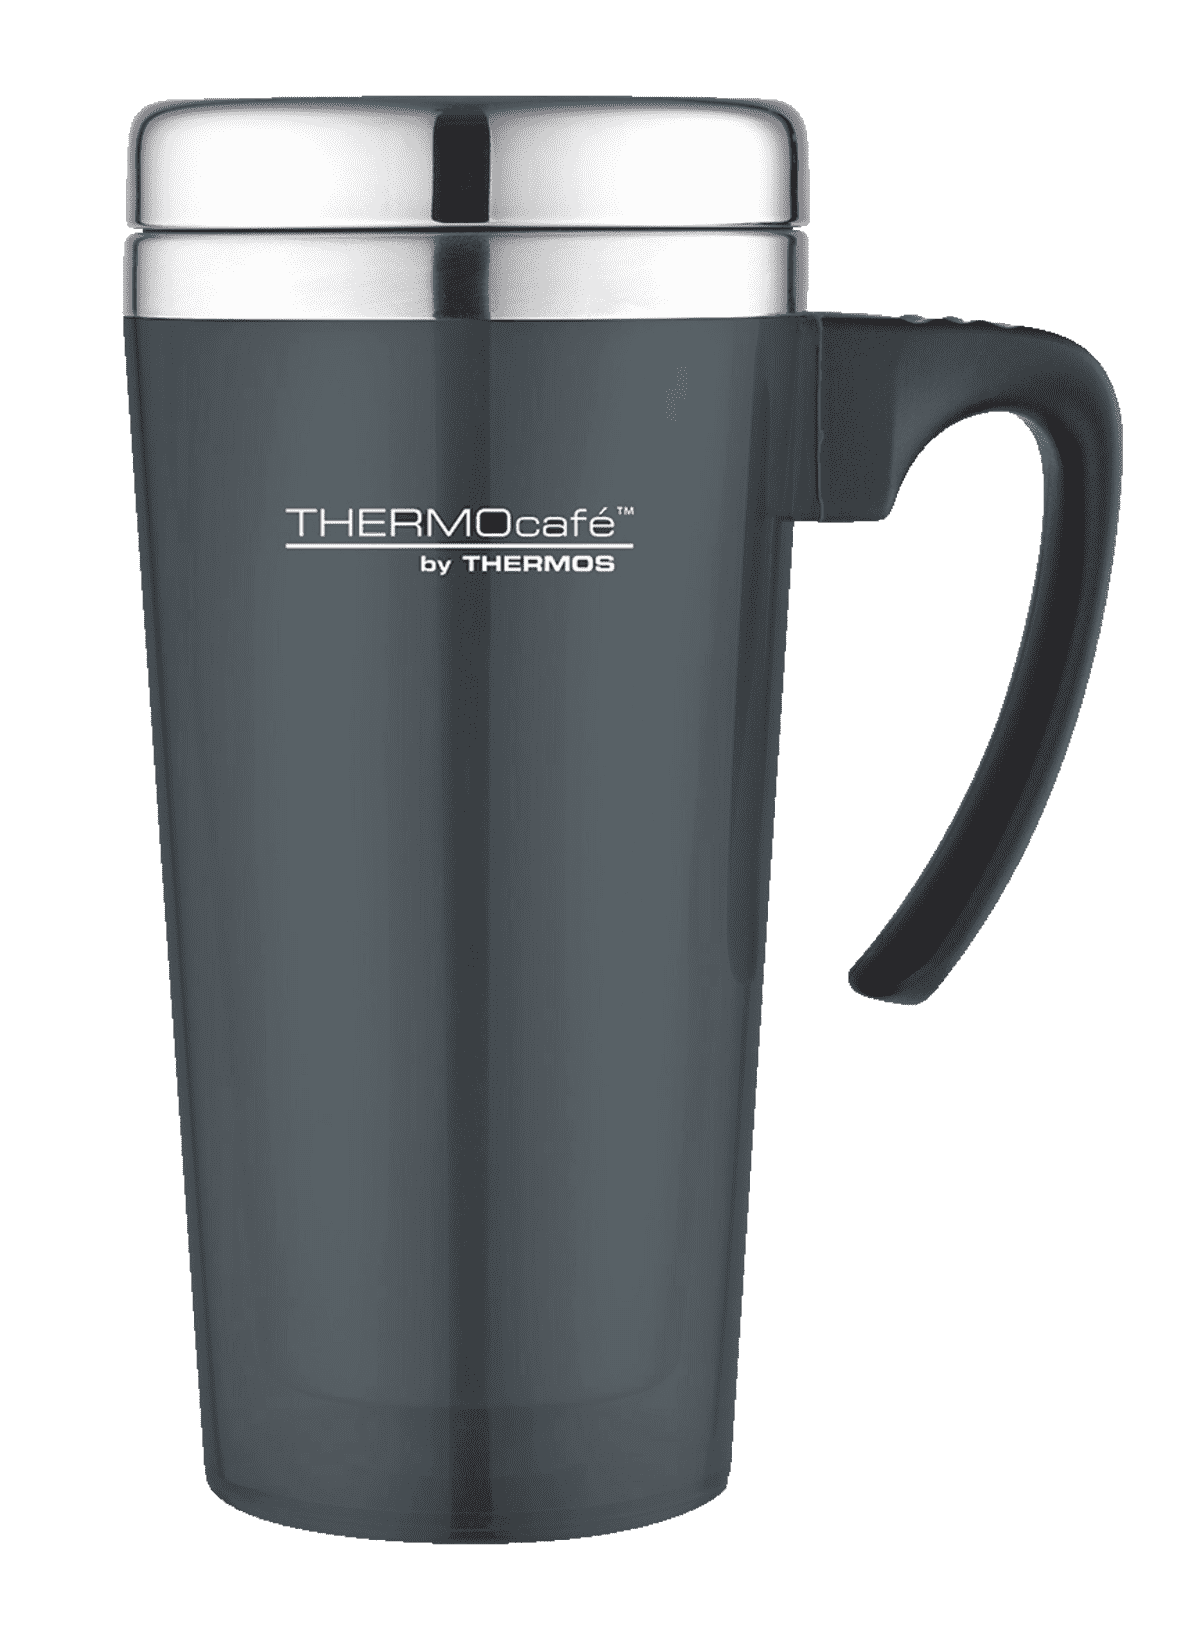 THERMOS  4061.235.040 Color Thermobecher in Schwarz/Silber | 05010576901842